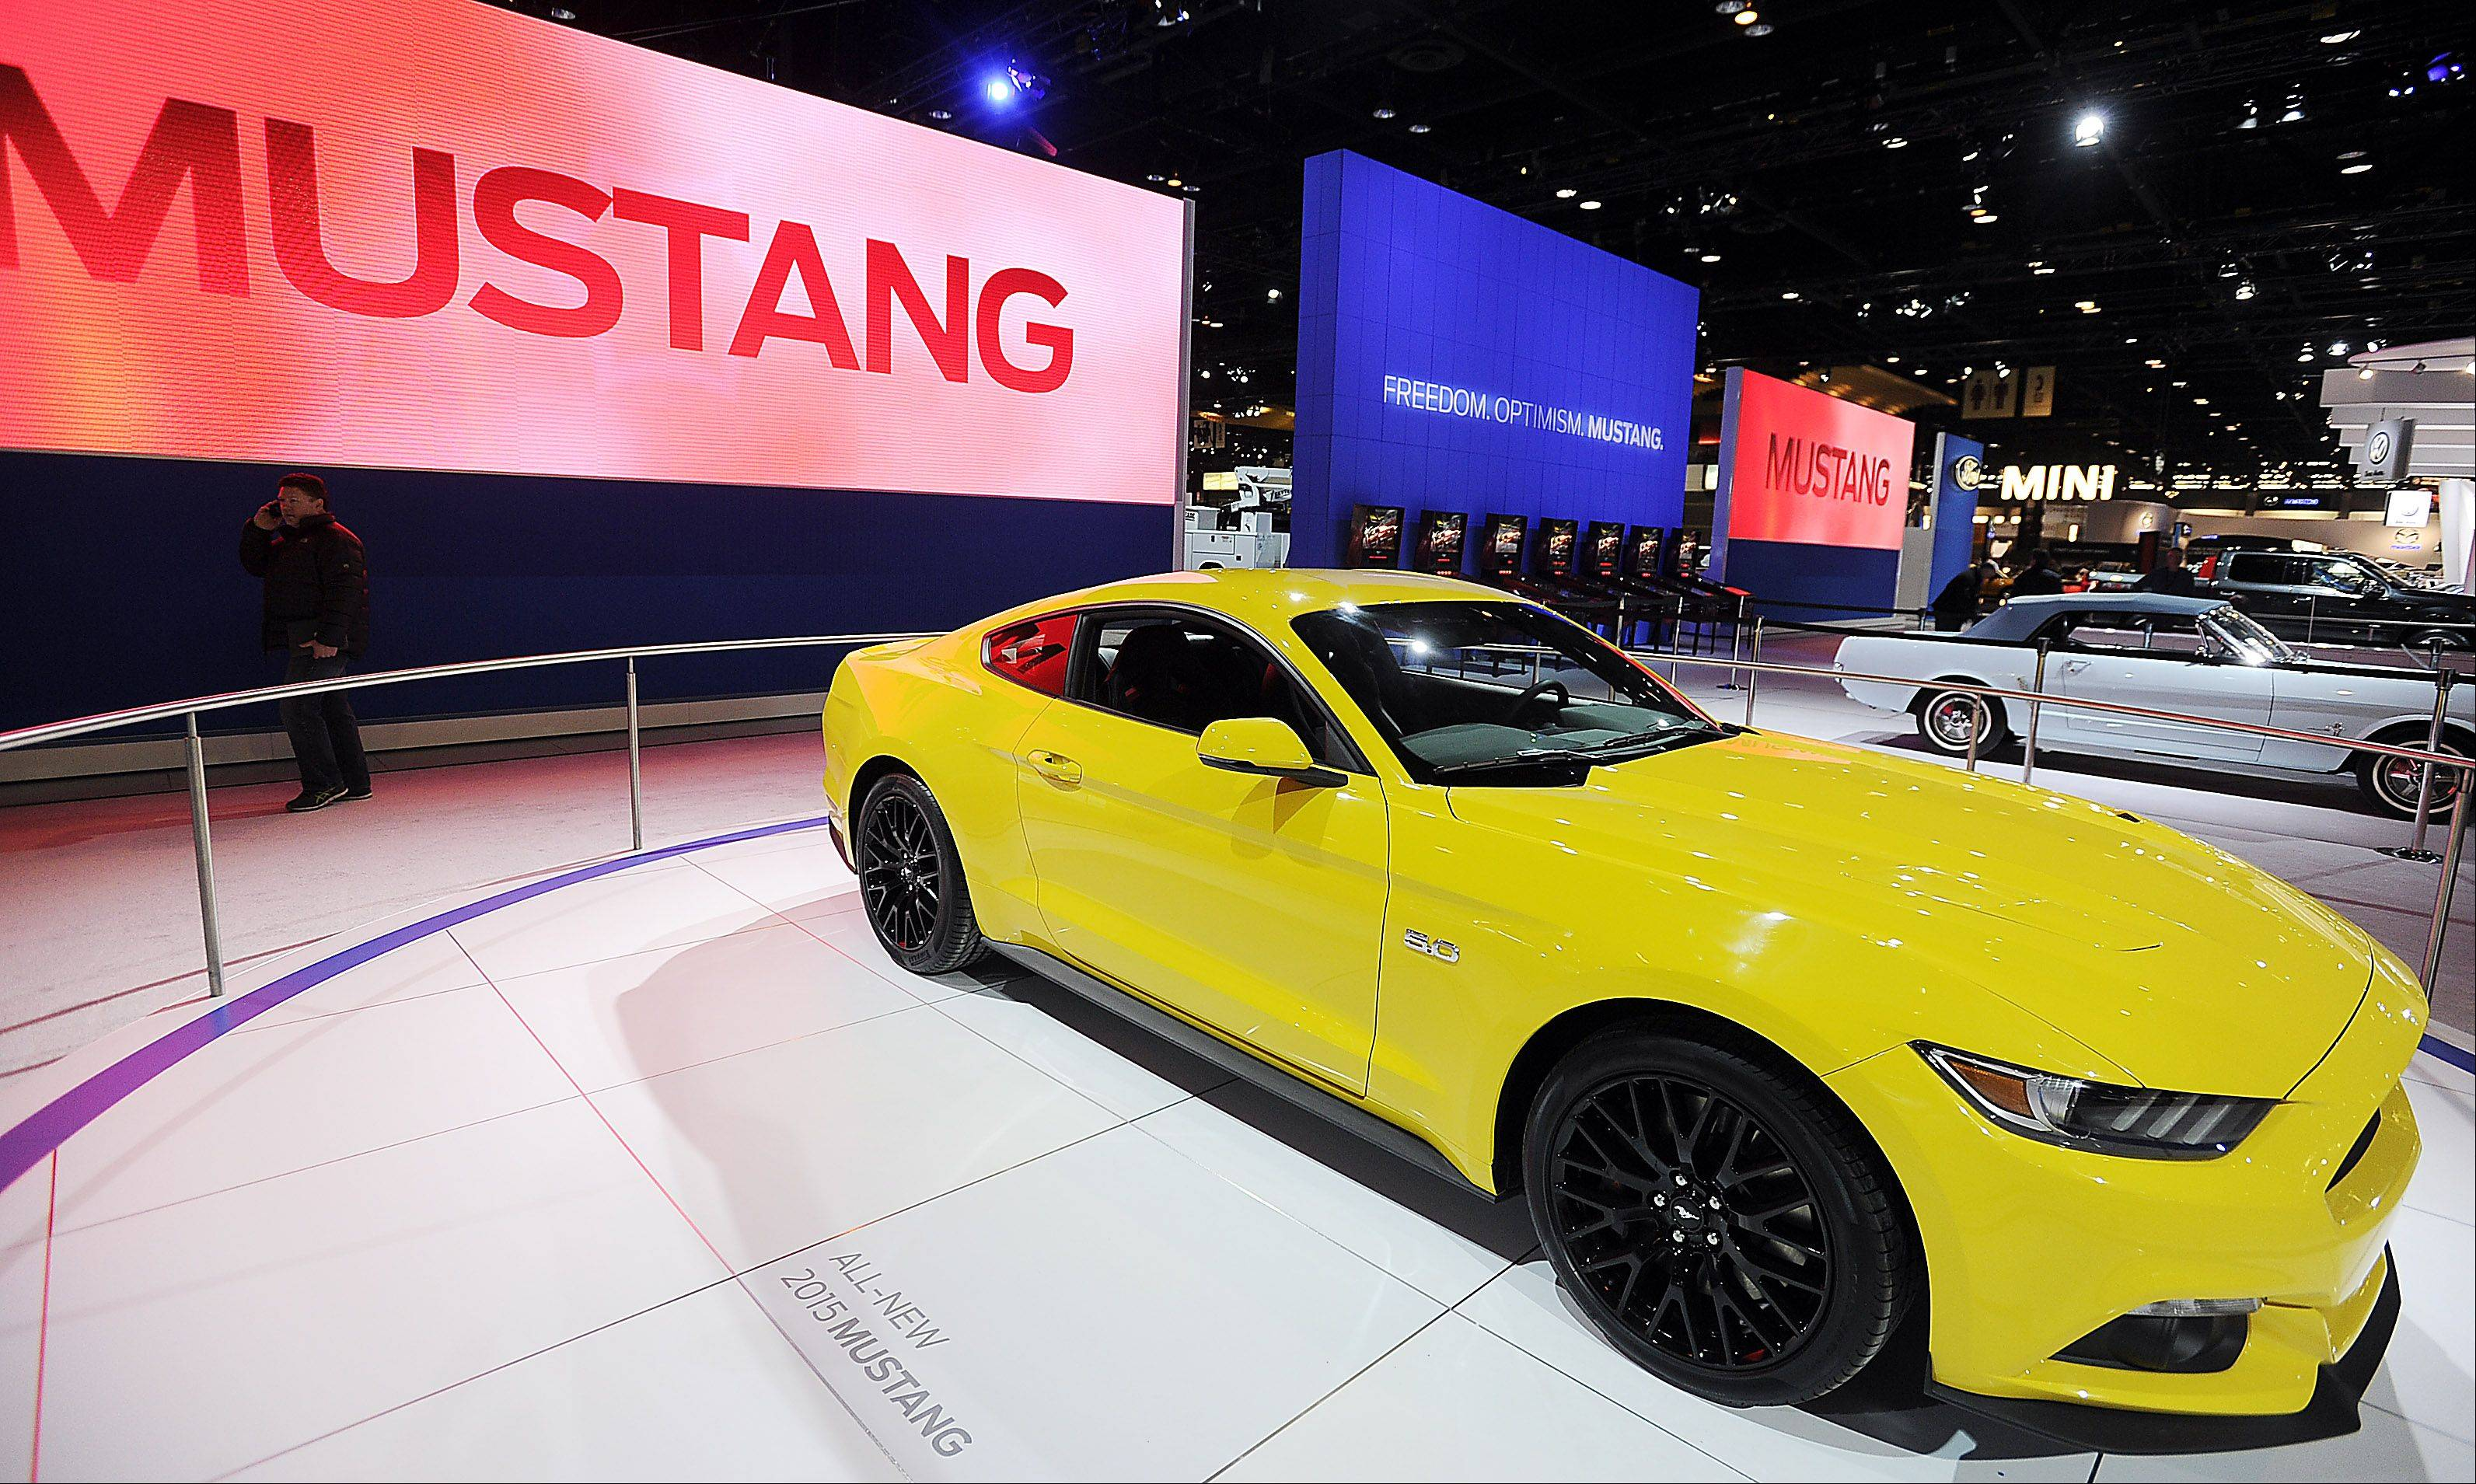 The Ford 2015 Mustang.